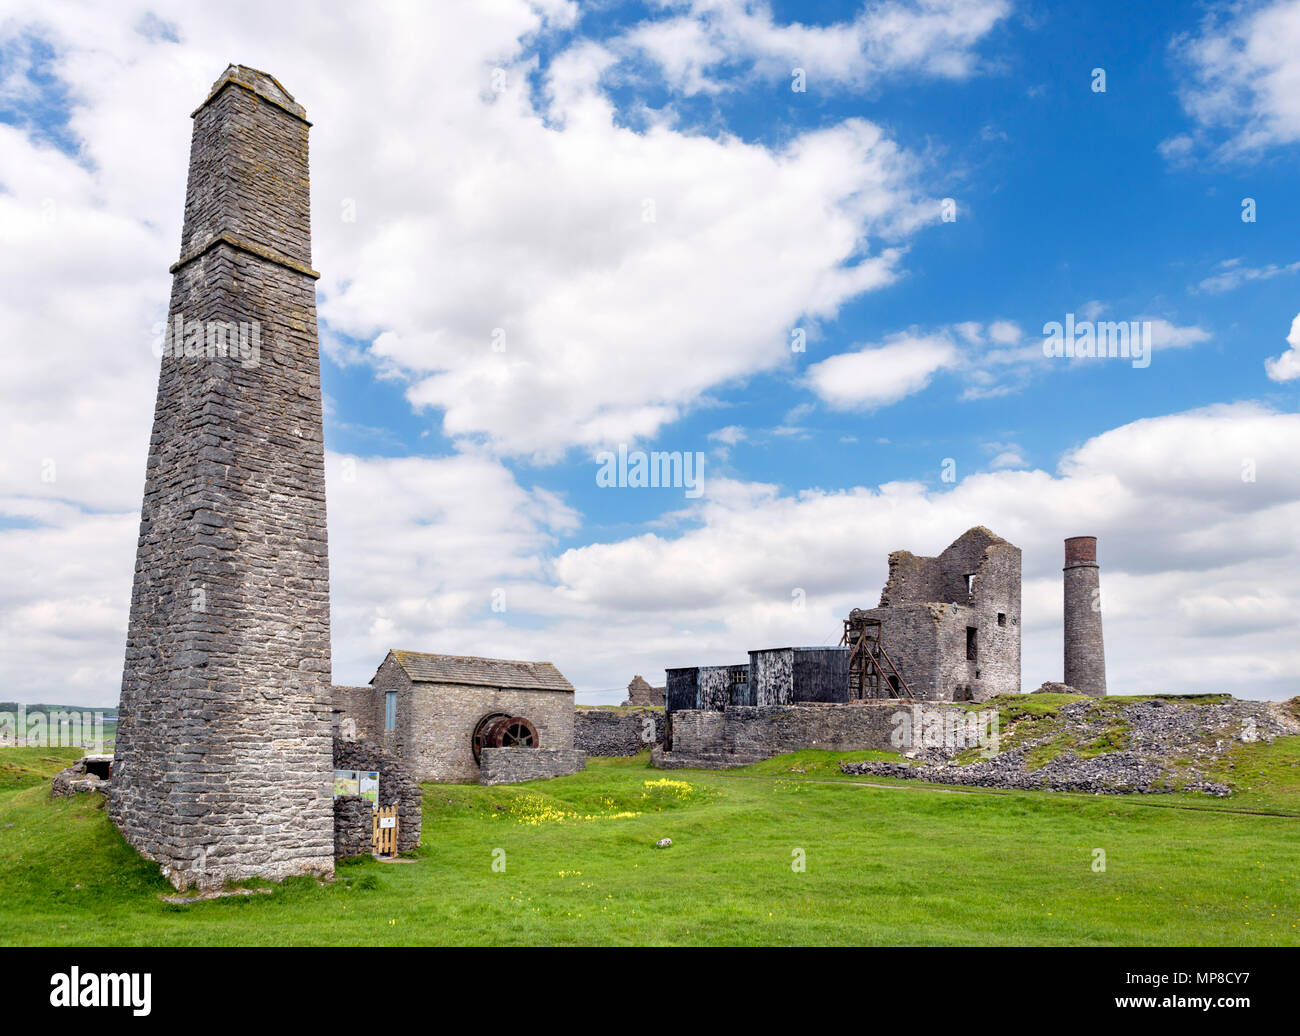 Ruins of the Magpie Mine, an old lead mine which closed in the 1950s, near Sheldon, Peak District, Derbyshire, England, UK - Stock Image